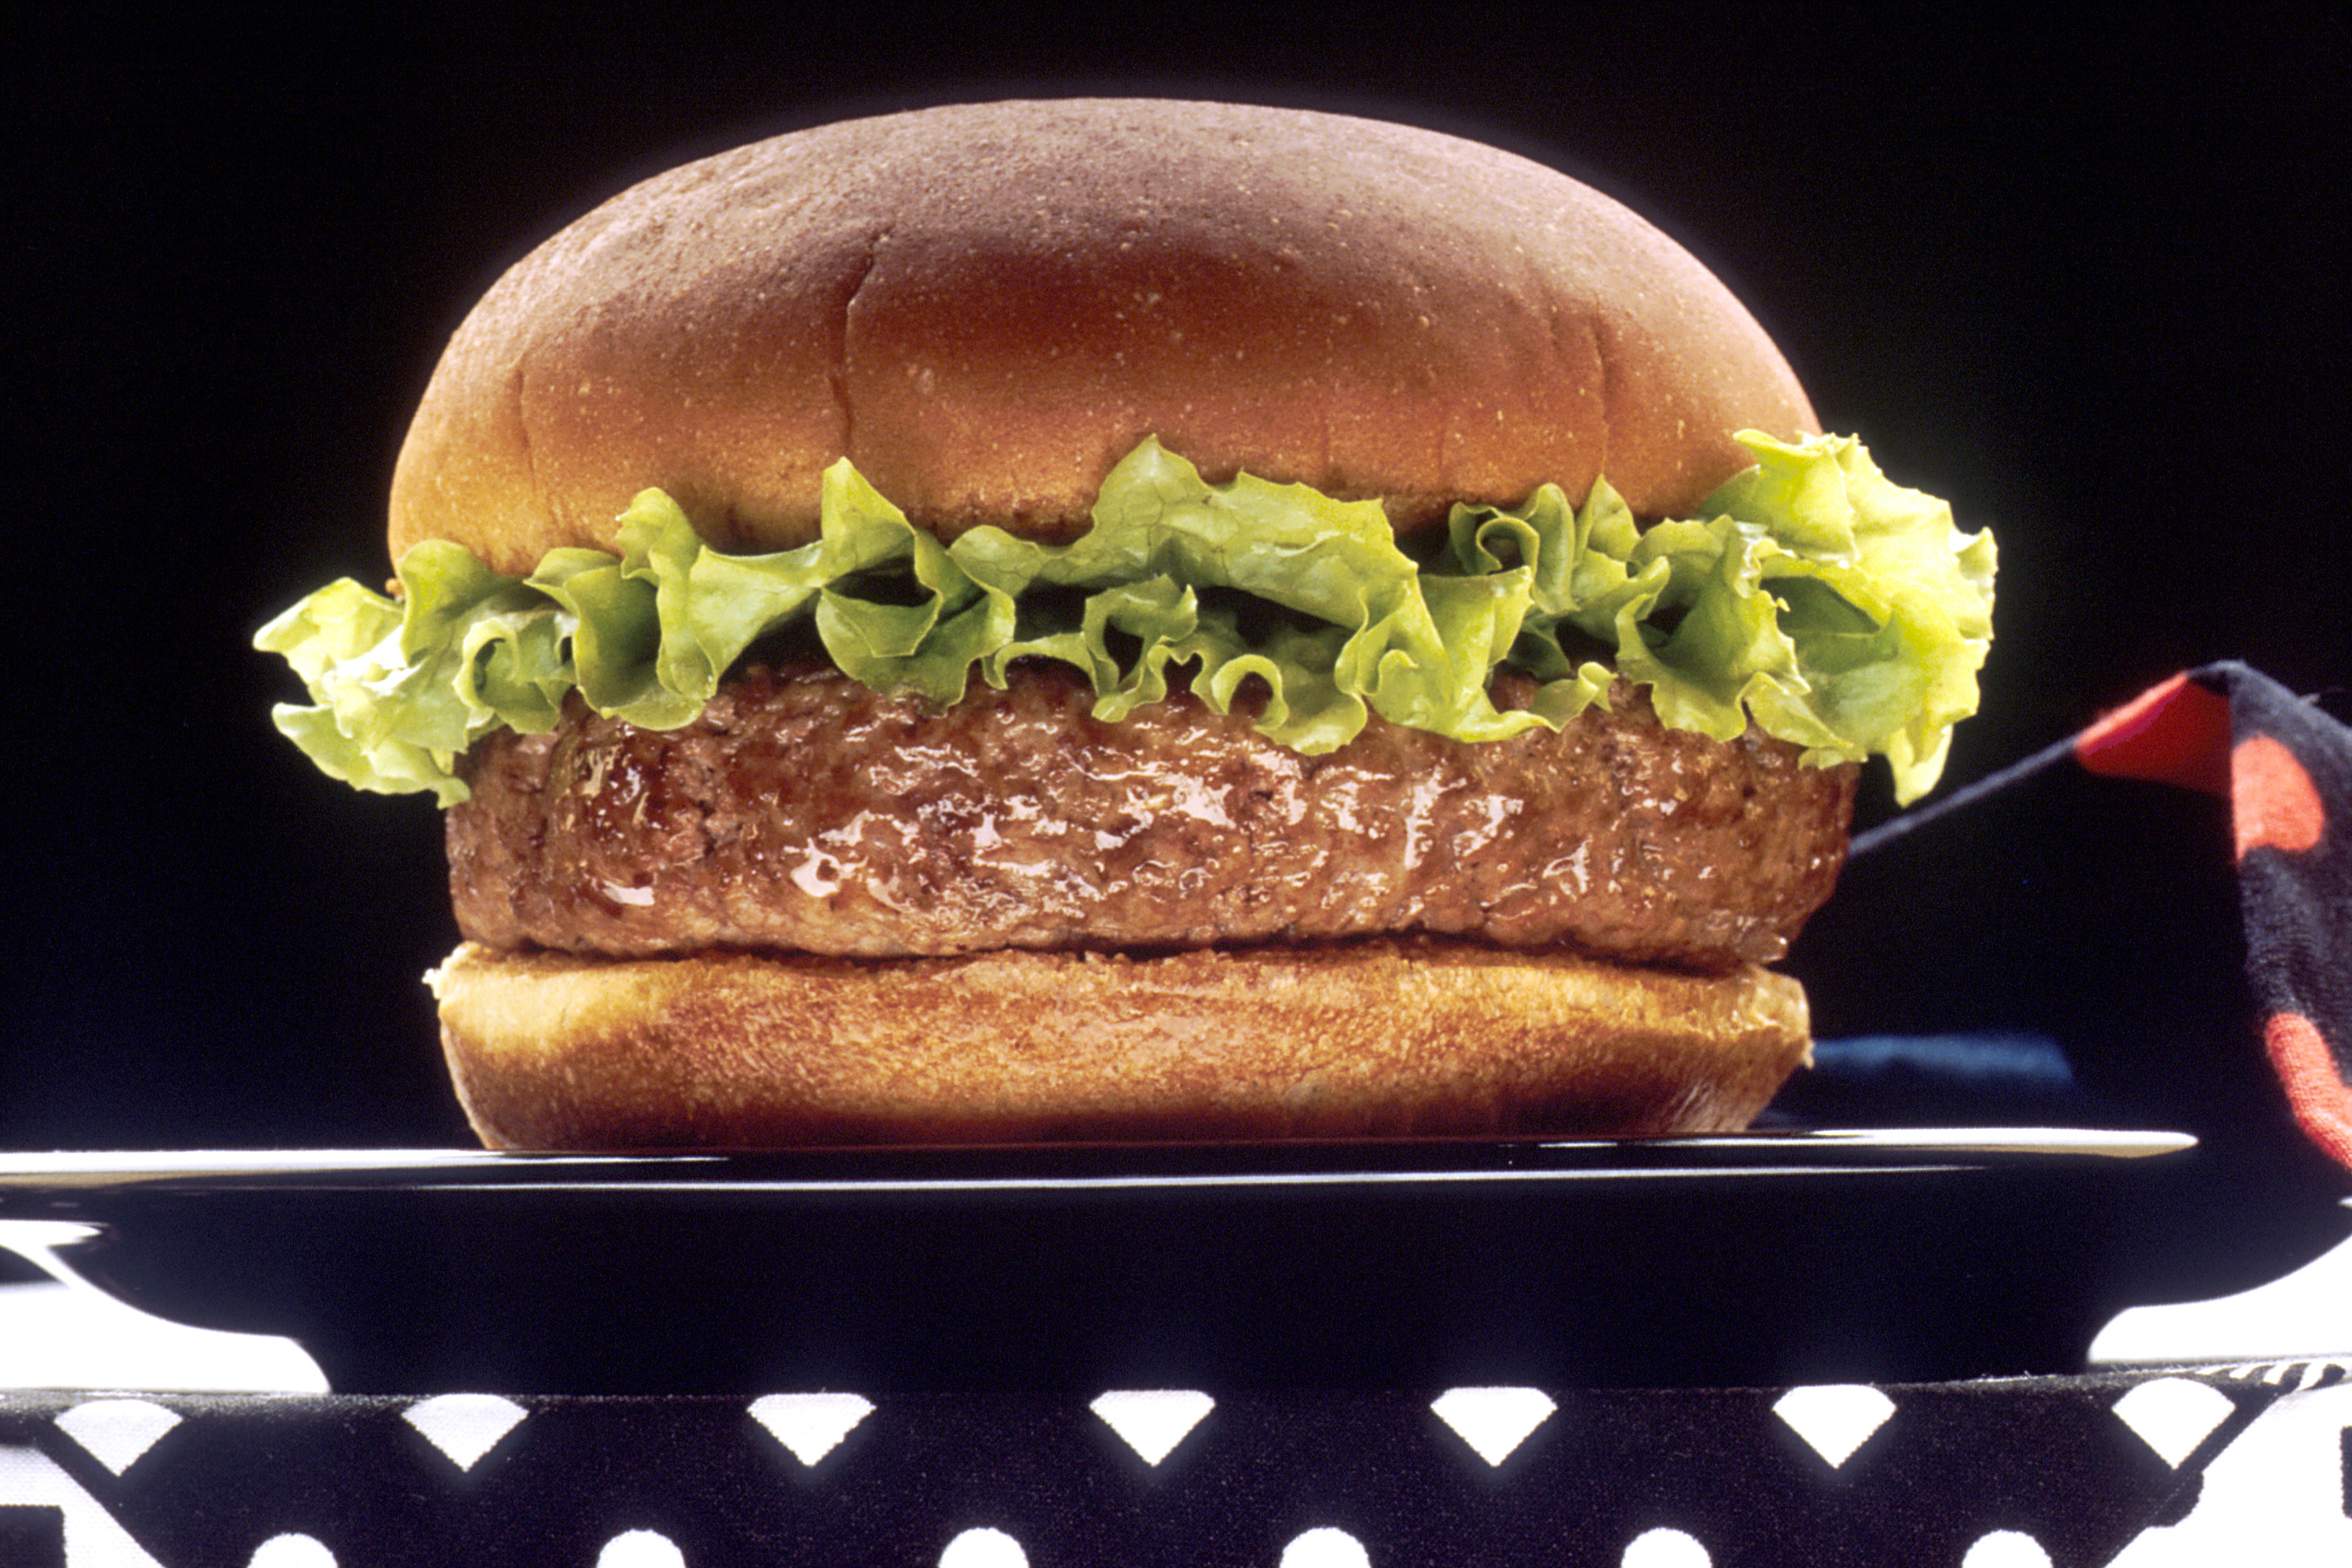 http://upload.wikimedia.org/wikipedia/commons/6/62/NCI_Visuals_Food_Hamburger.jpg